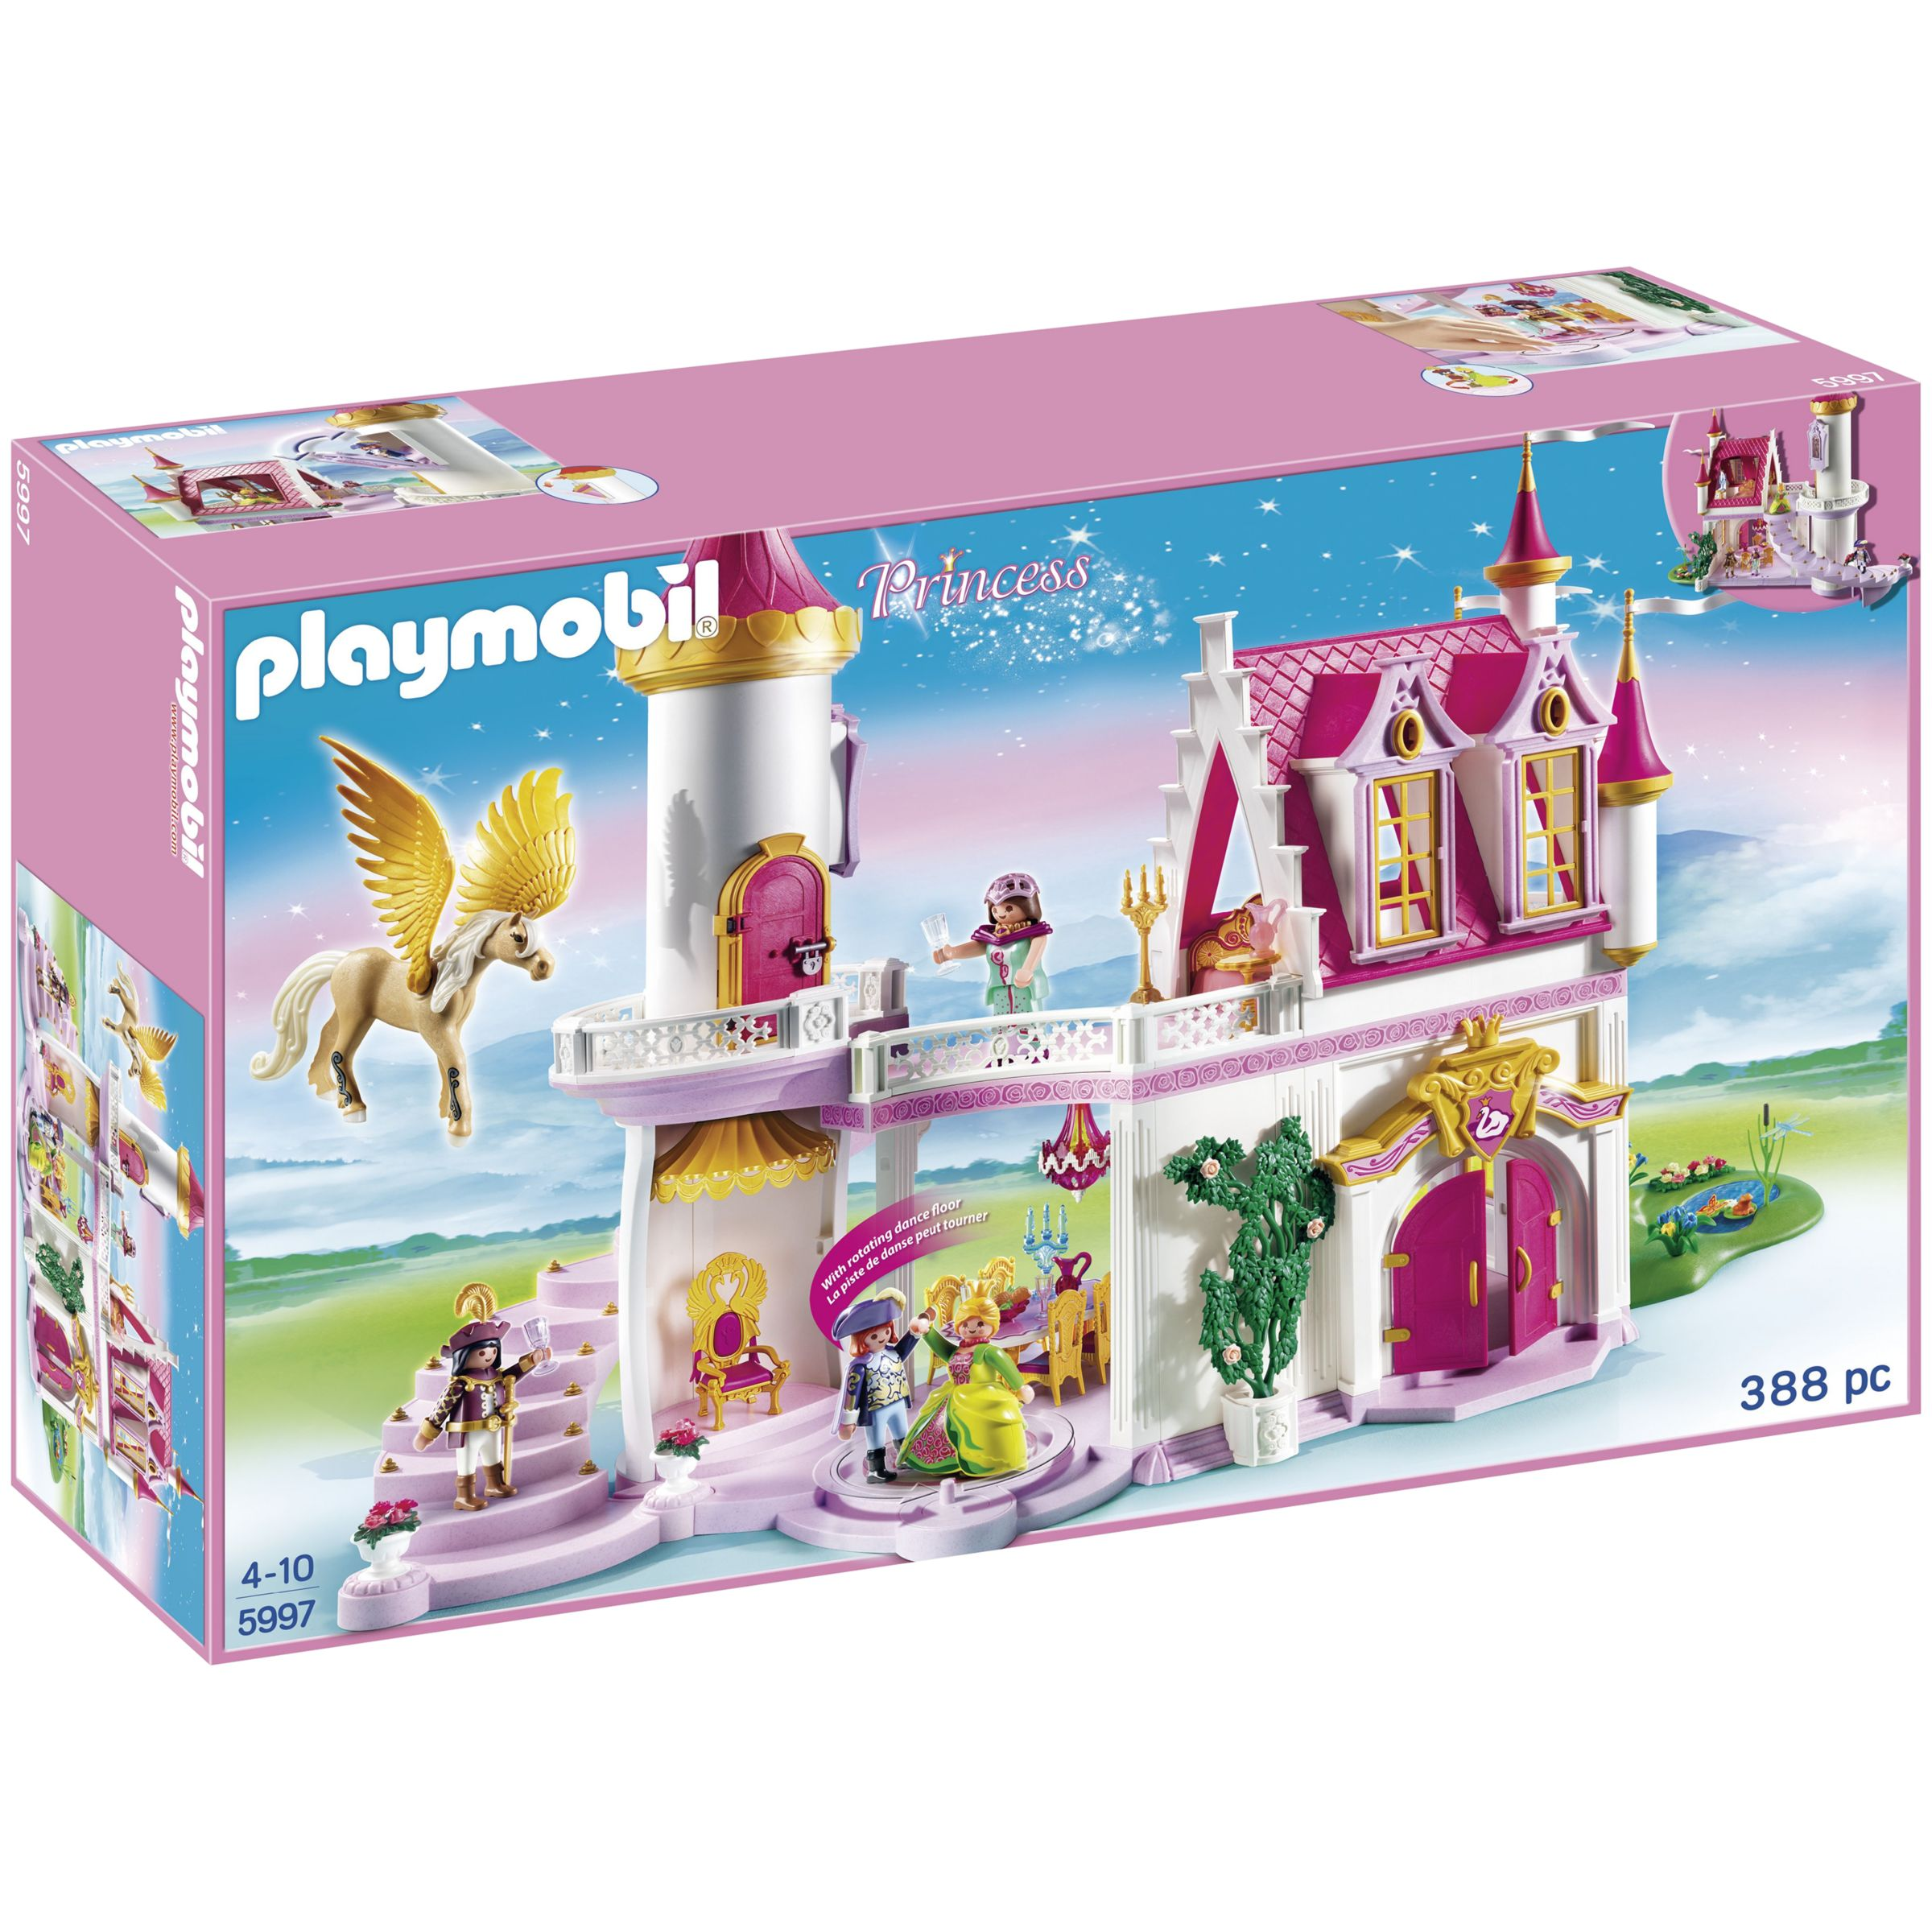 Click here for Playmobil Princess Fantasy Castle Mega Set